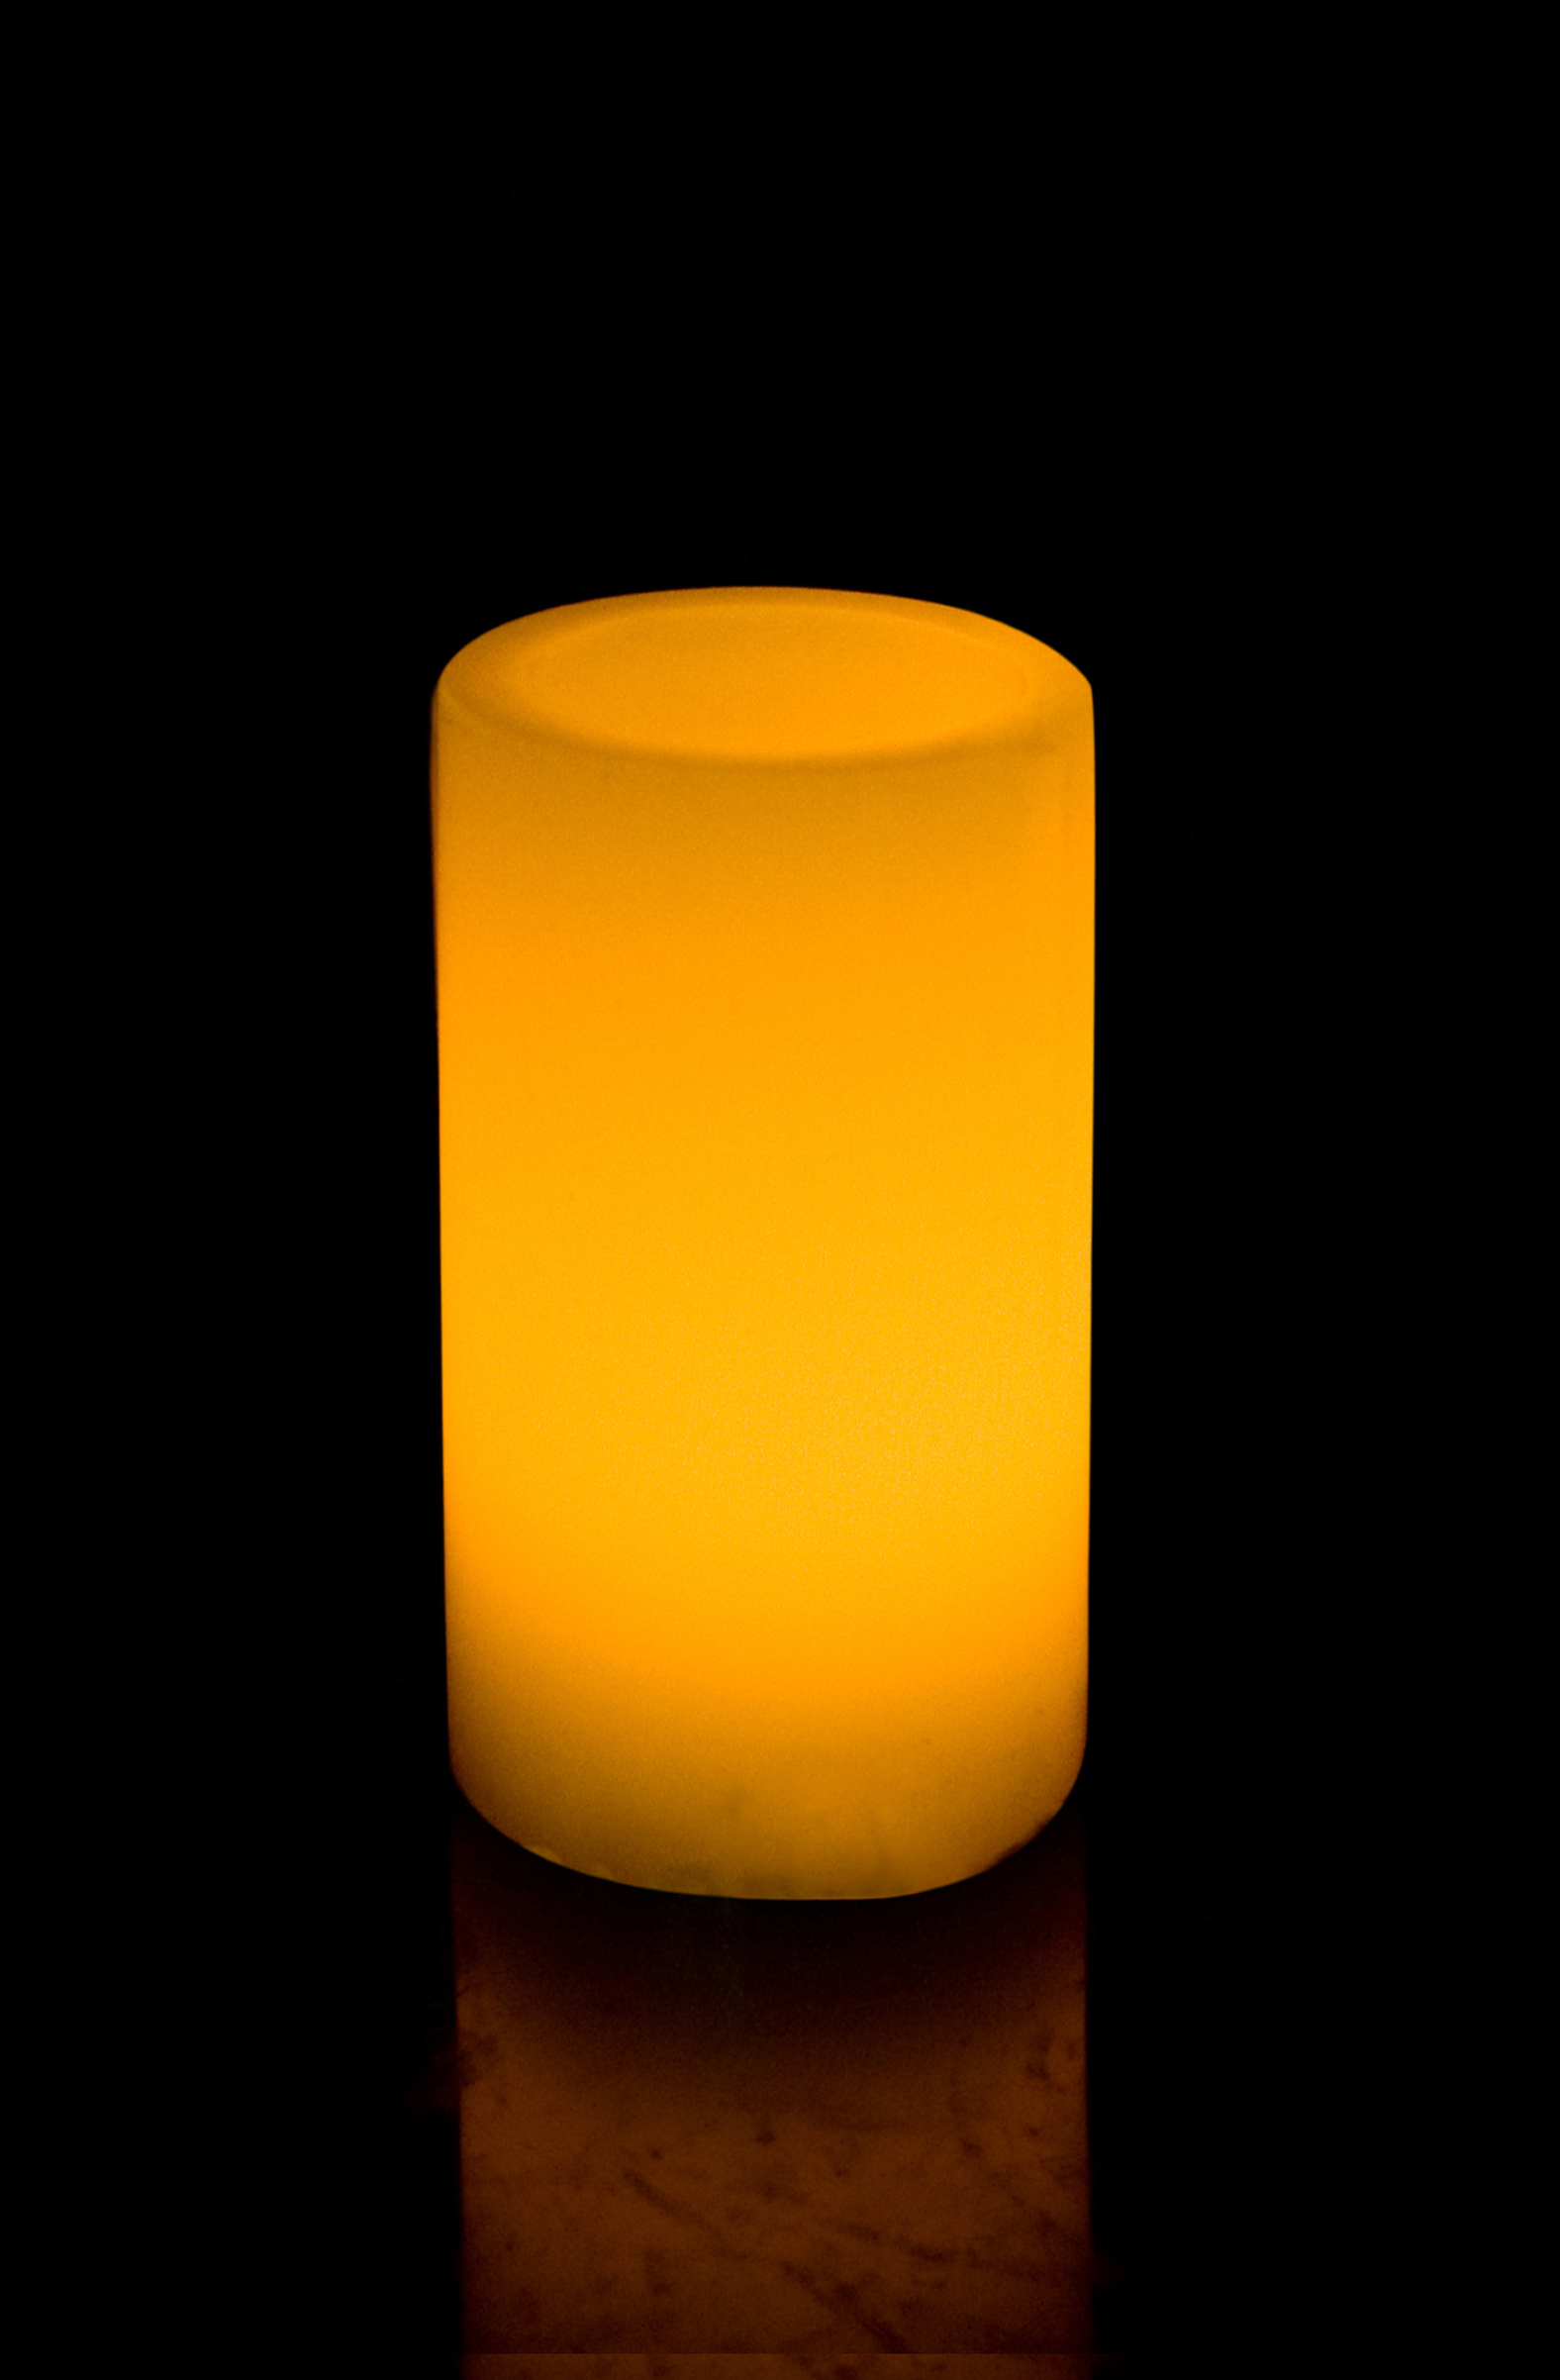 6 Inch Flameless Blow On-Off Pillar Candle - Even Edge - Yellow